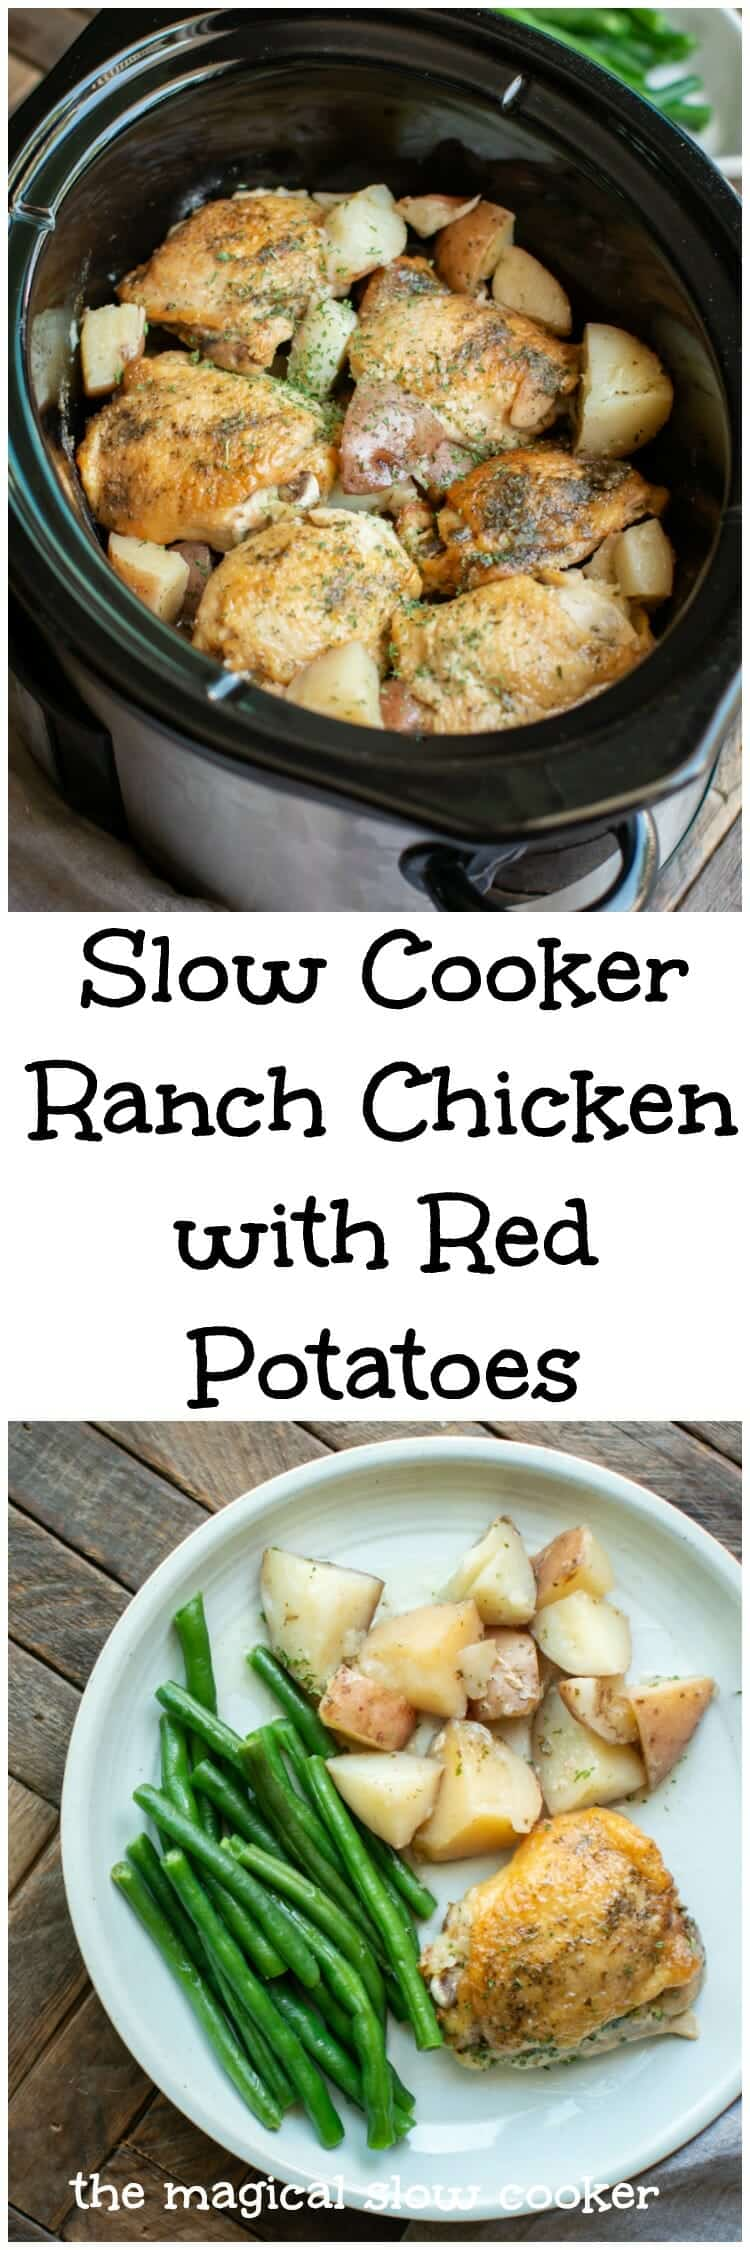 Slow Cooker Ranch Chicken with Red Potatoes